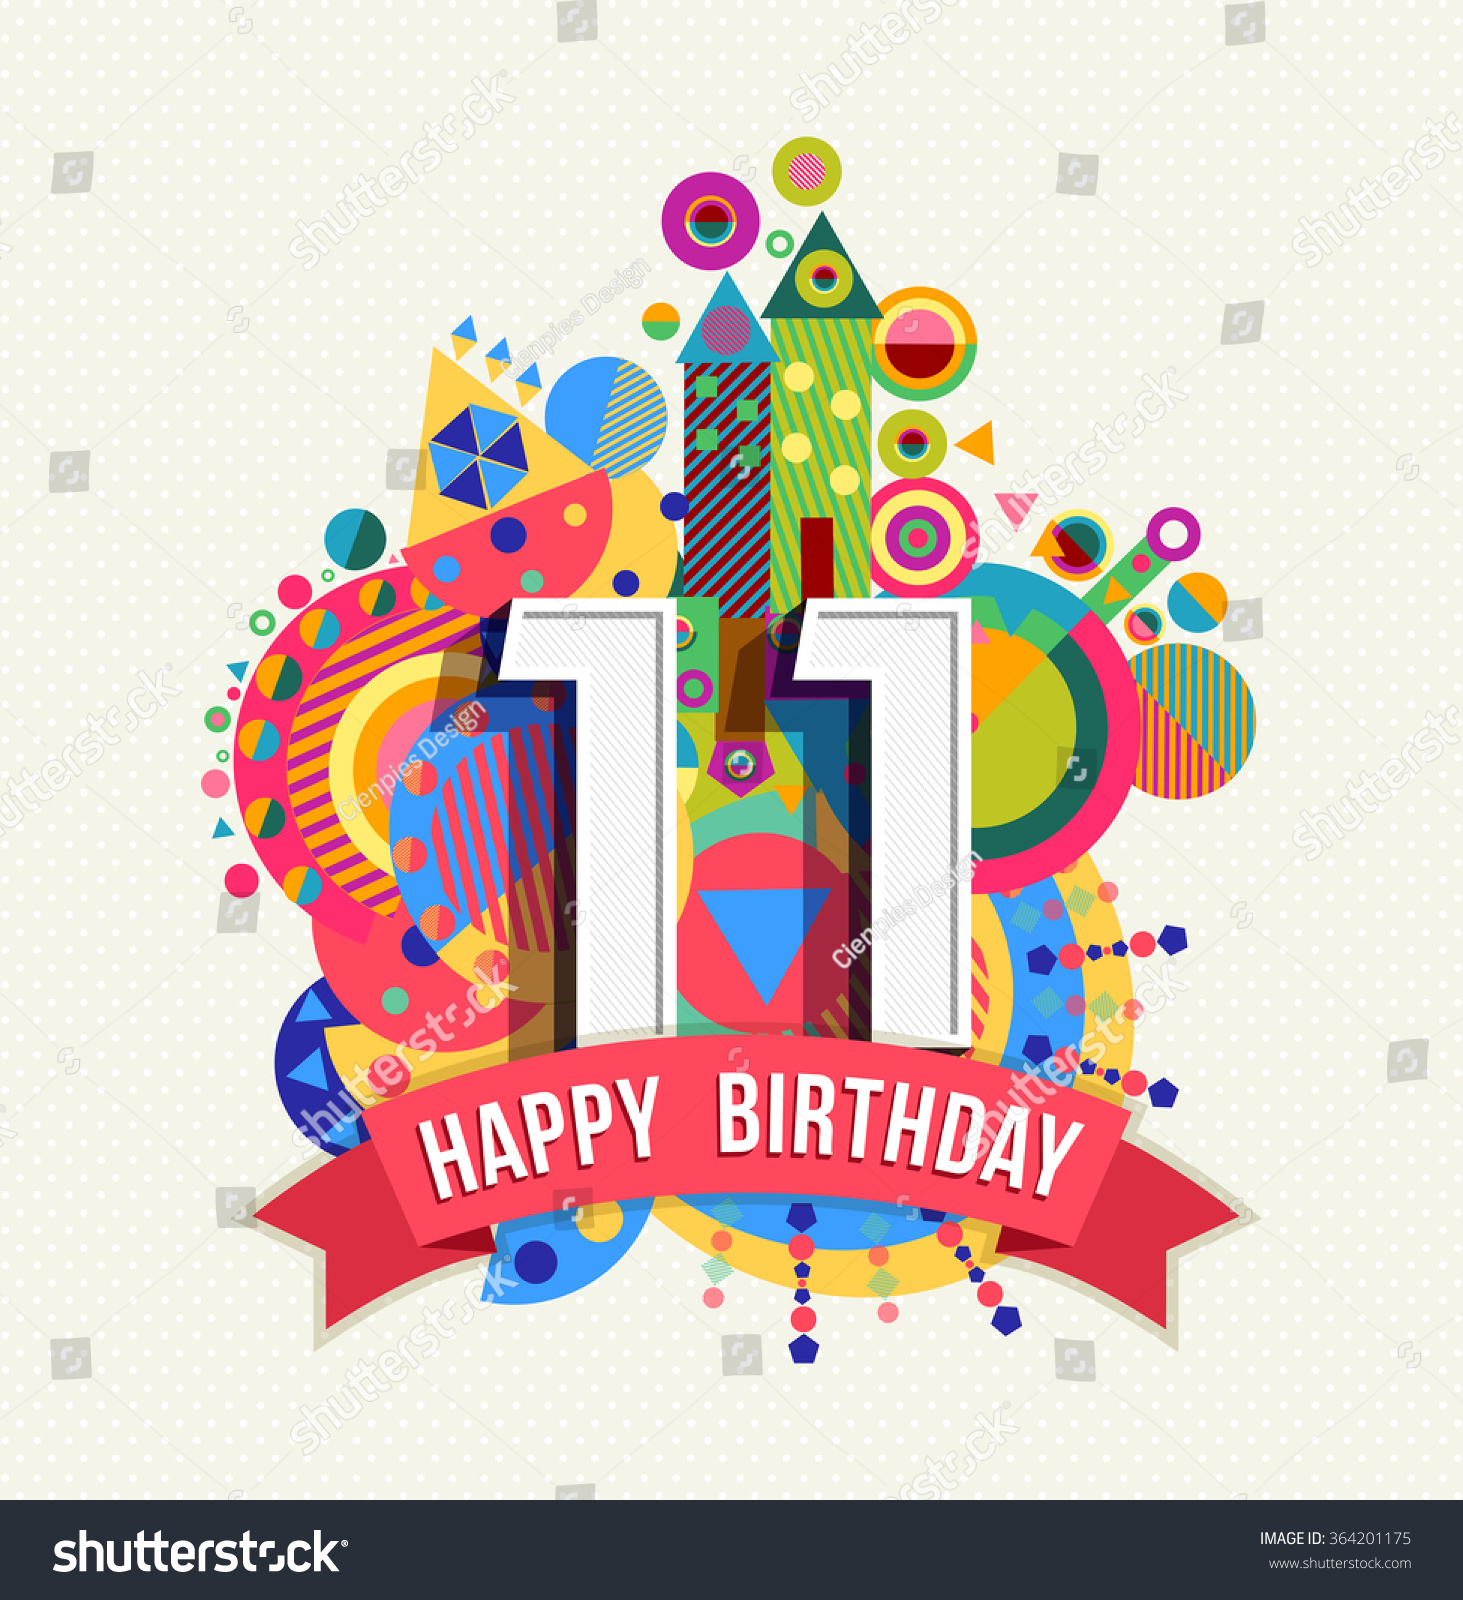 Happy Birthday Eleven 11 Year Fun Celebration Greeting Card With Number Text Label And